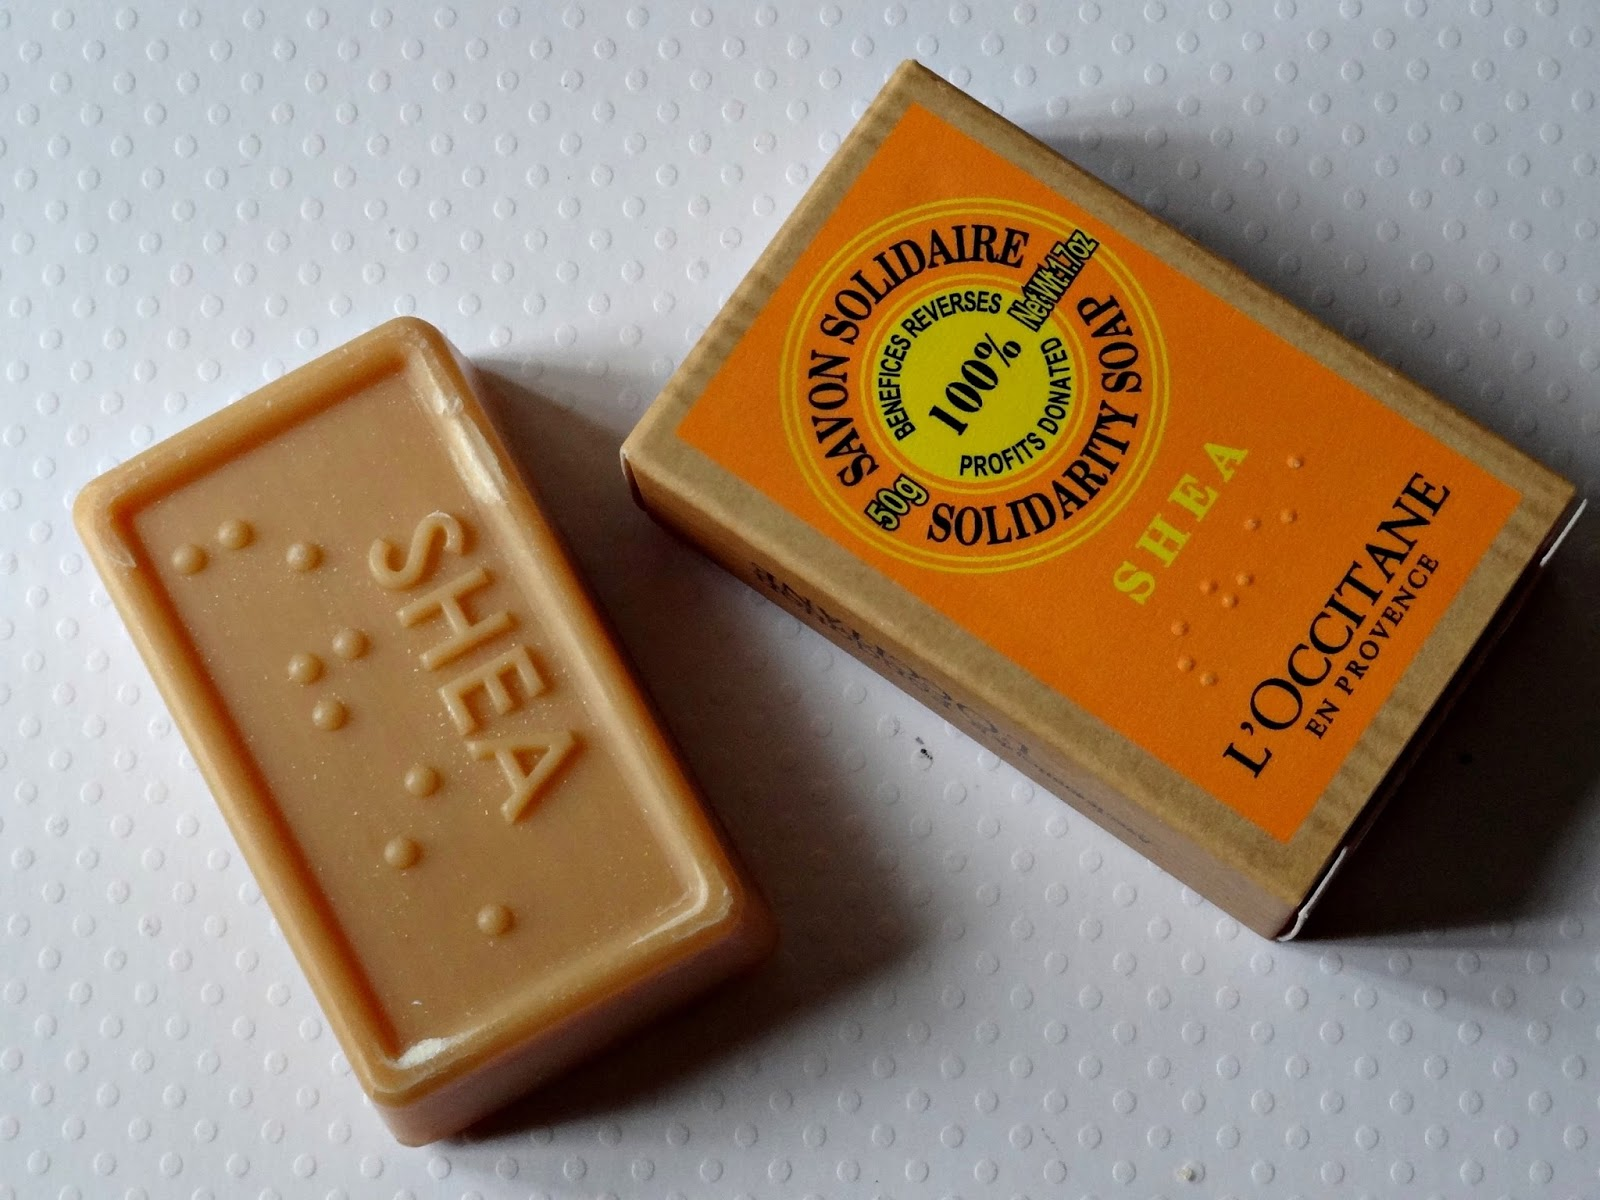 L'Occitane Shea Solidarity Soap Review, Photos